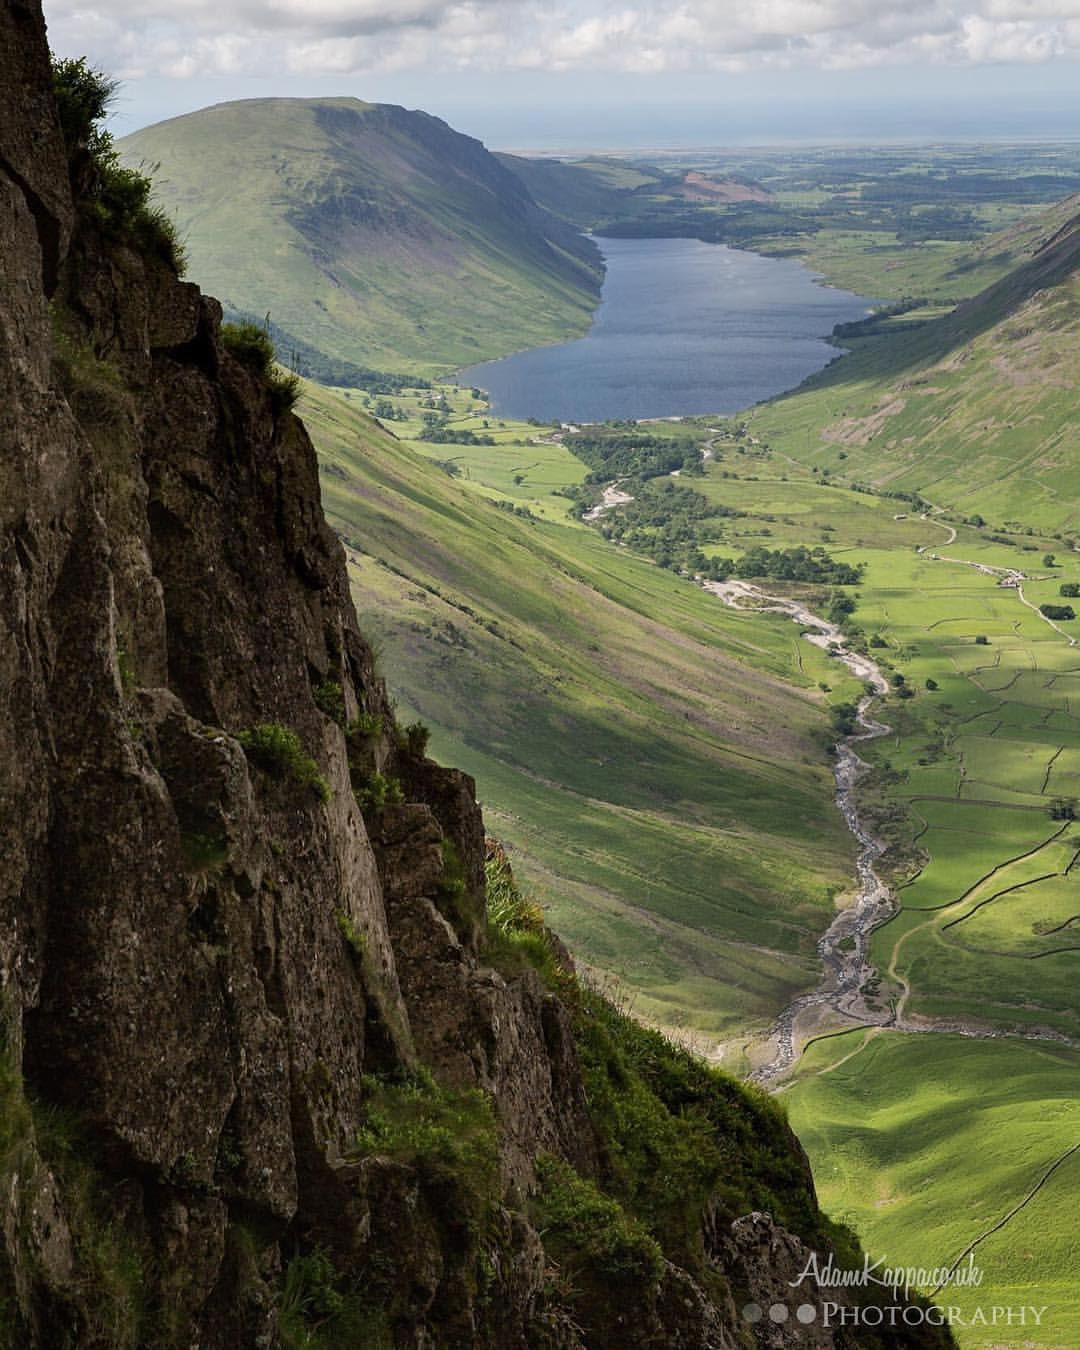 Have You Climbed Great Gable Photo By Adamkappaphotography Love That In Lakeland There Is Always With Images Cool Places To Visit Lake District Lake District England